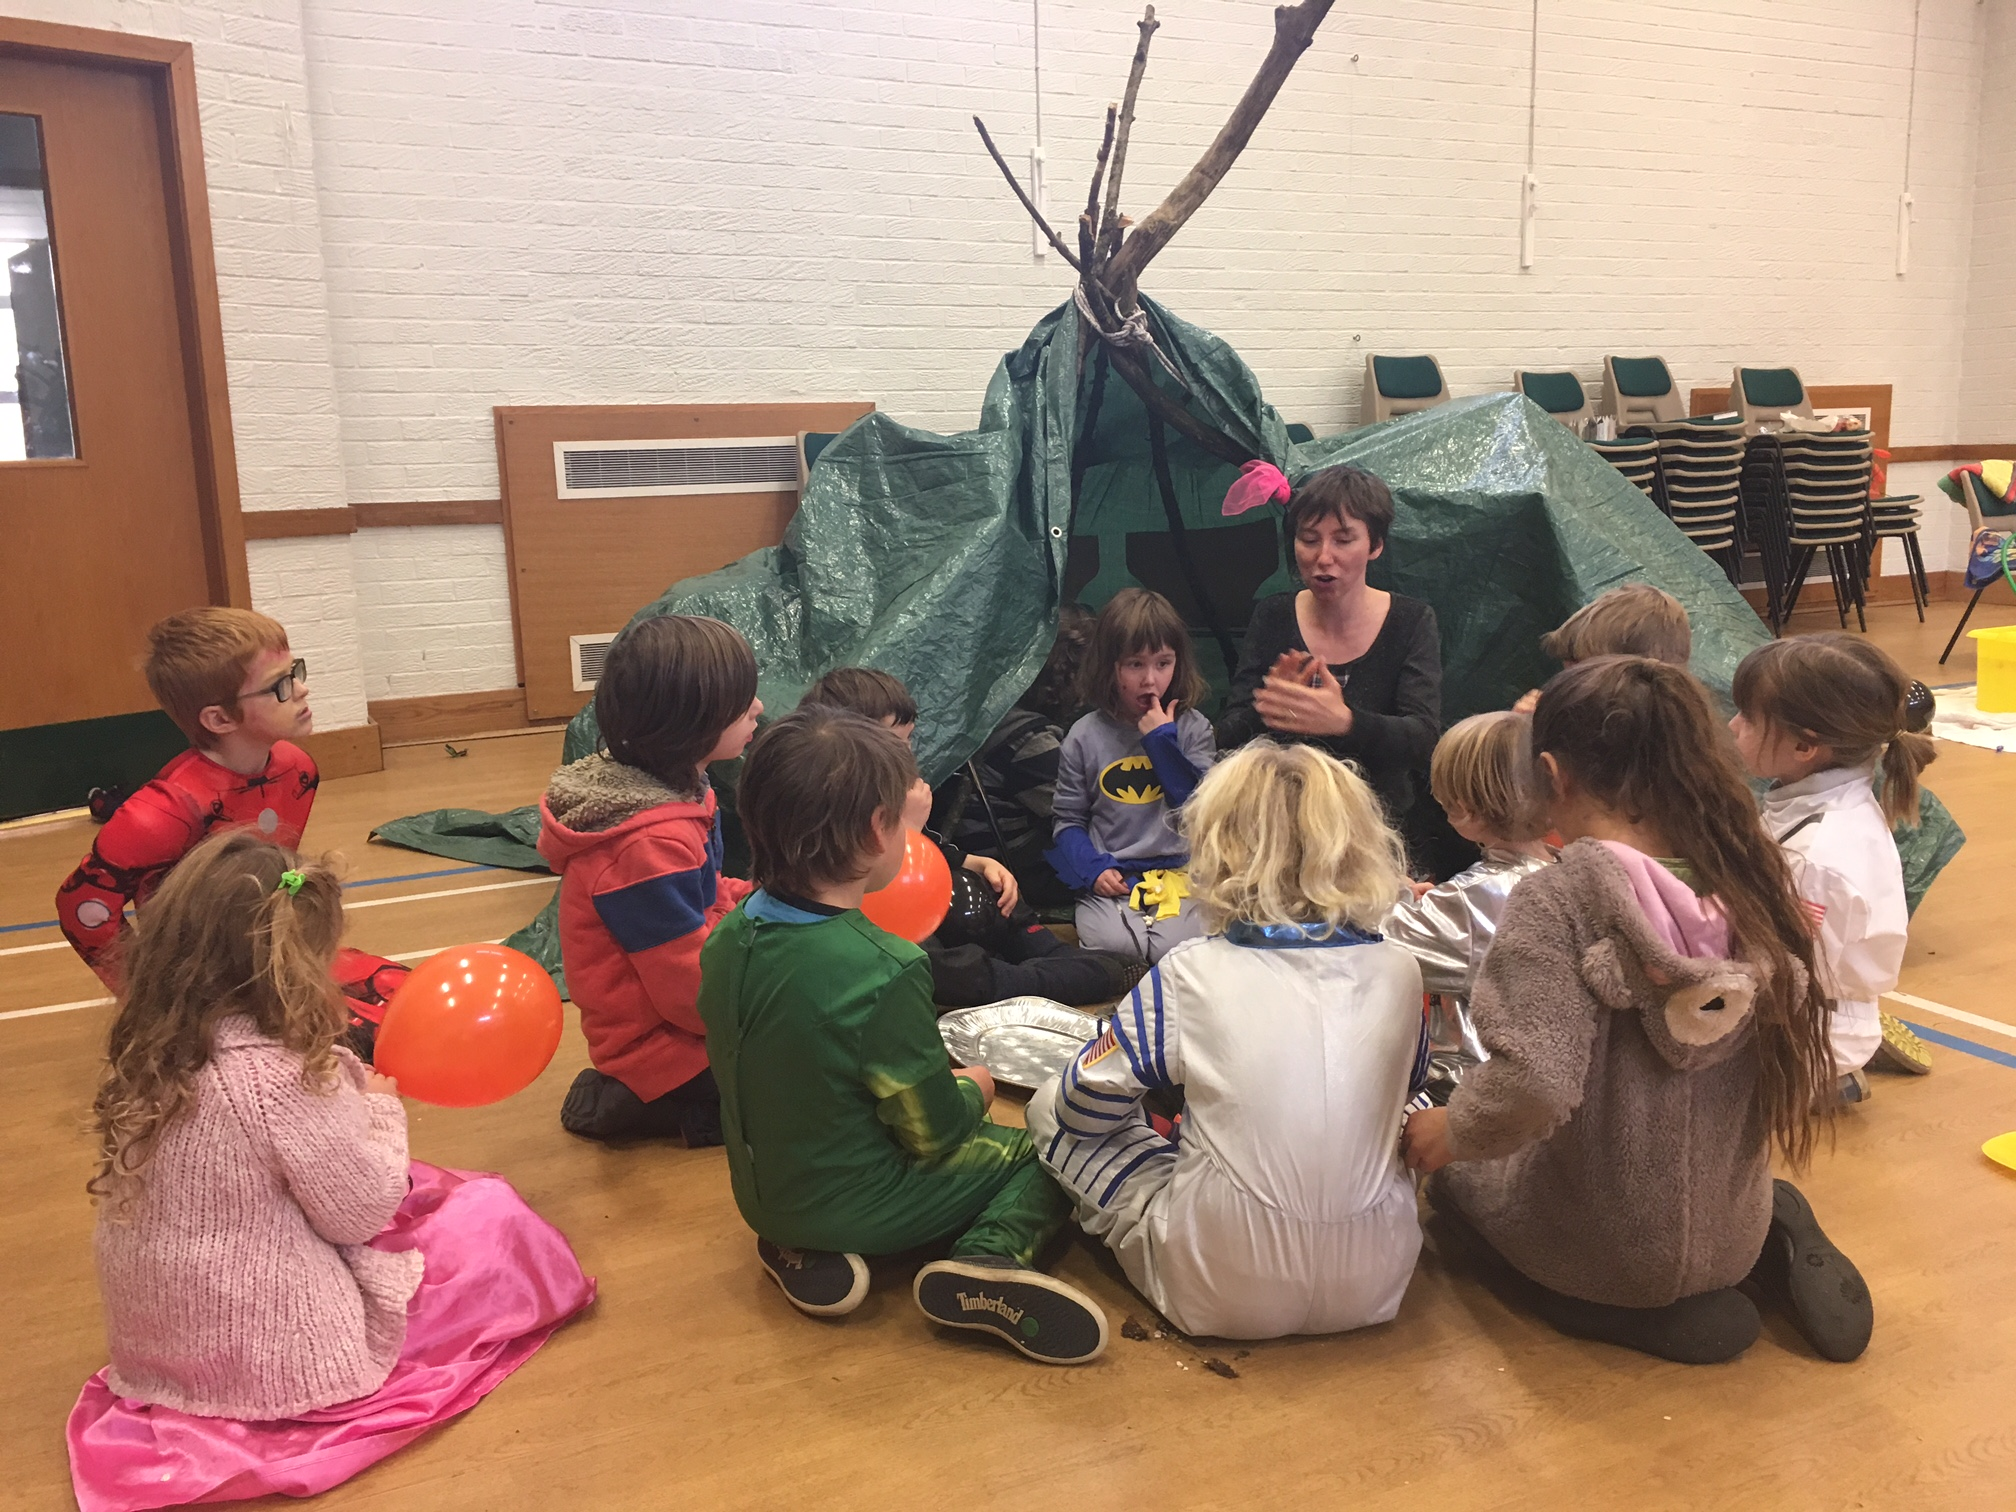 Indoor party with den and tarps and story teller